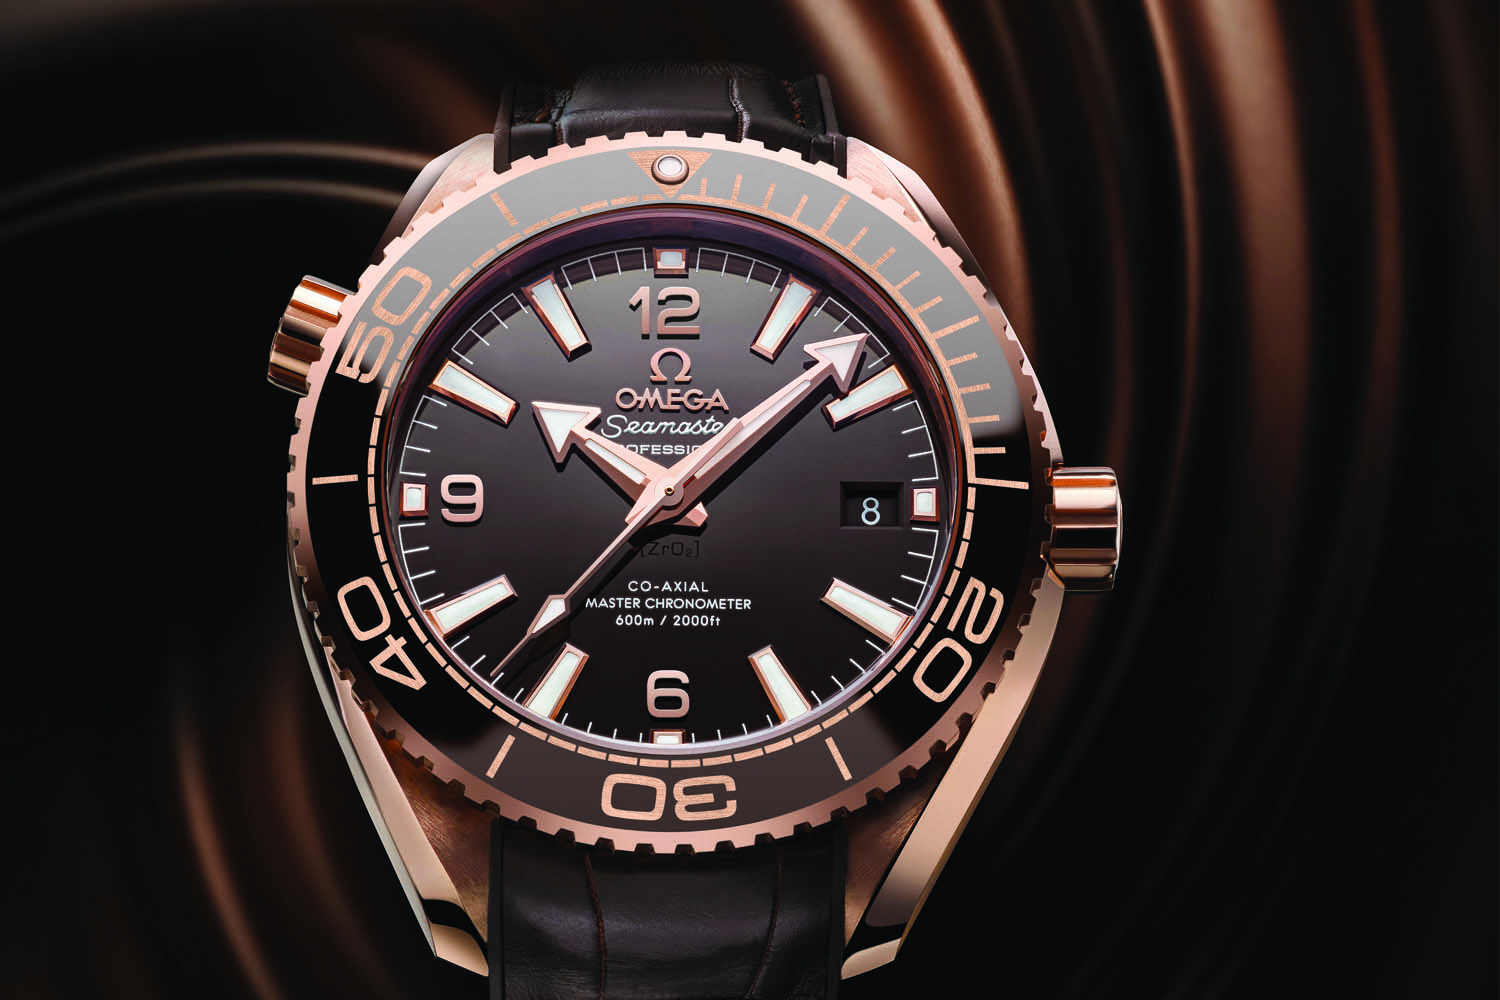 Omega Seamaster Planet Ocean 600m Master Chronometer 39.5mm Sedna Gold brown dial - baselworld 2016 - ref. 215.63.40.20.13.001